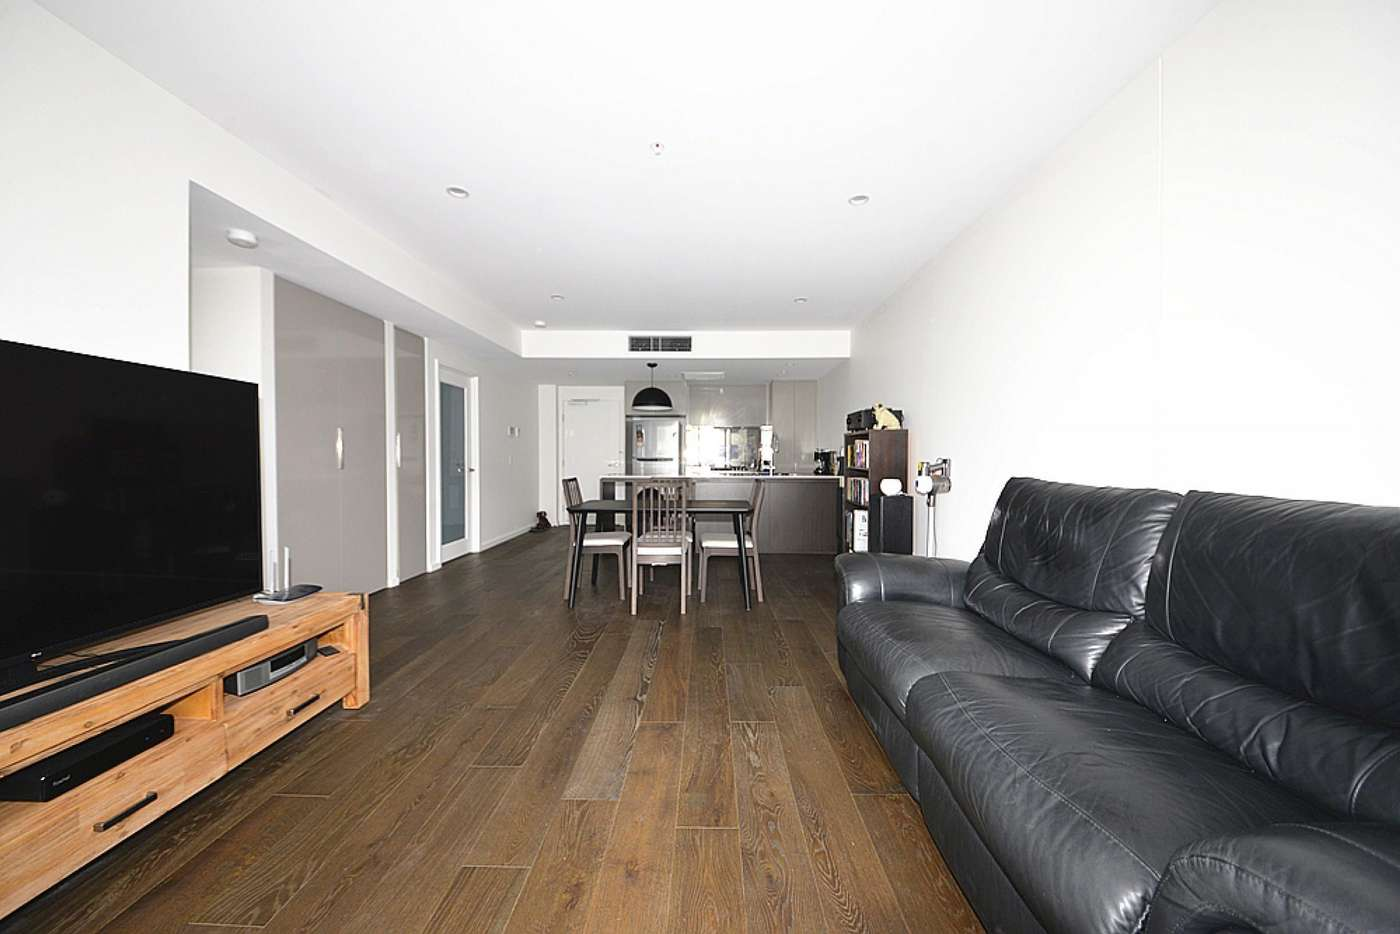 Main view of Homely apartment listing, 307/148 Logan Rd, Woolloongabba QLD 4102